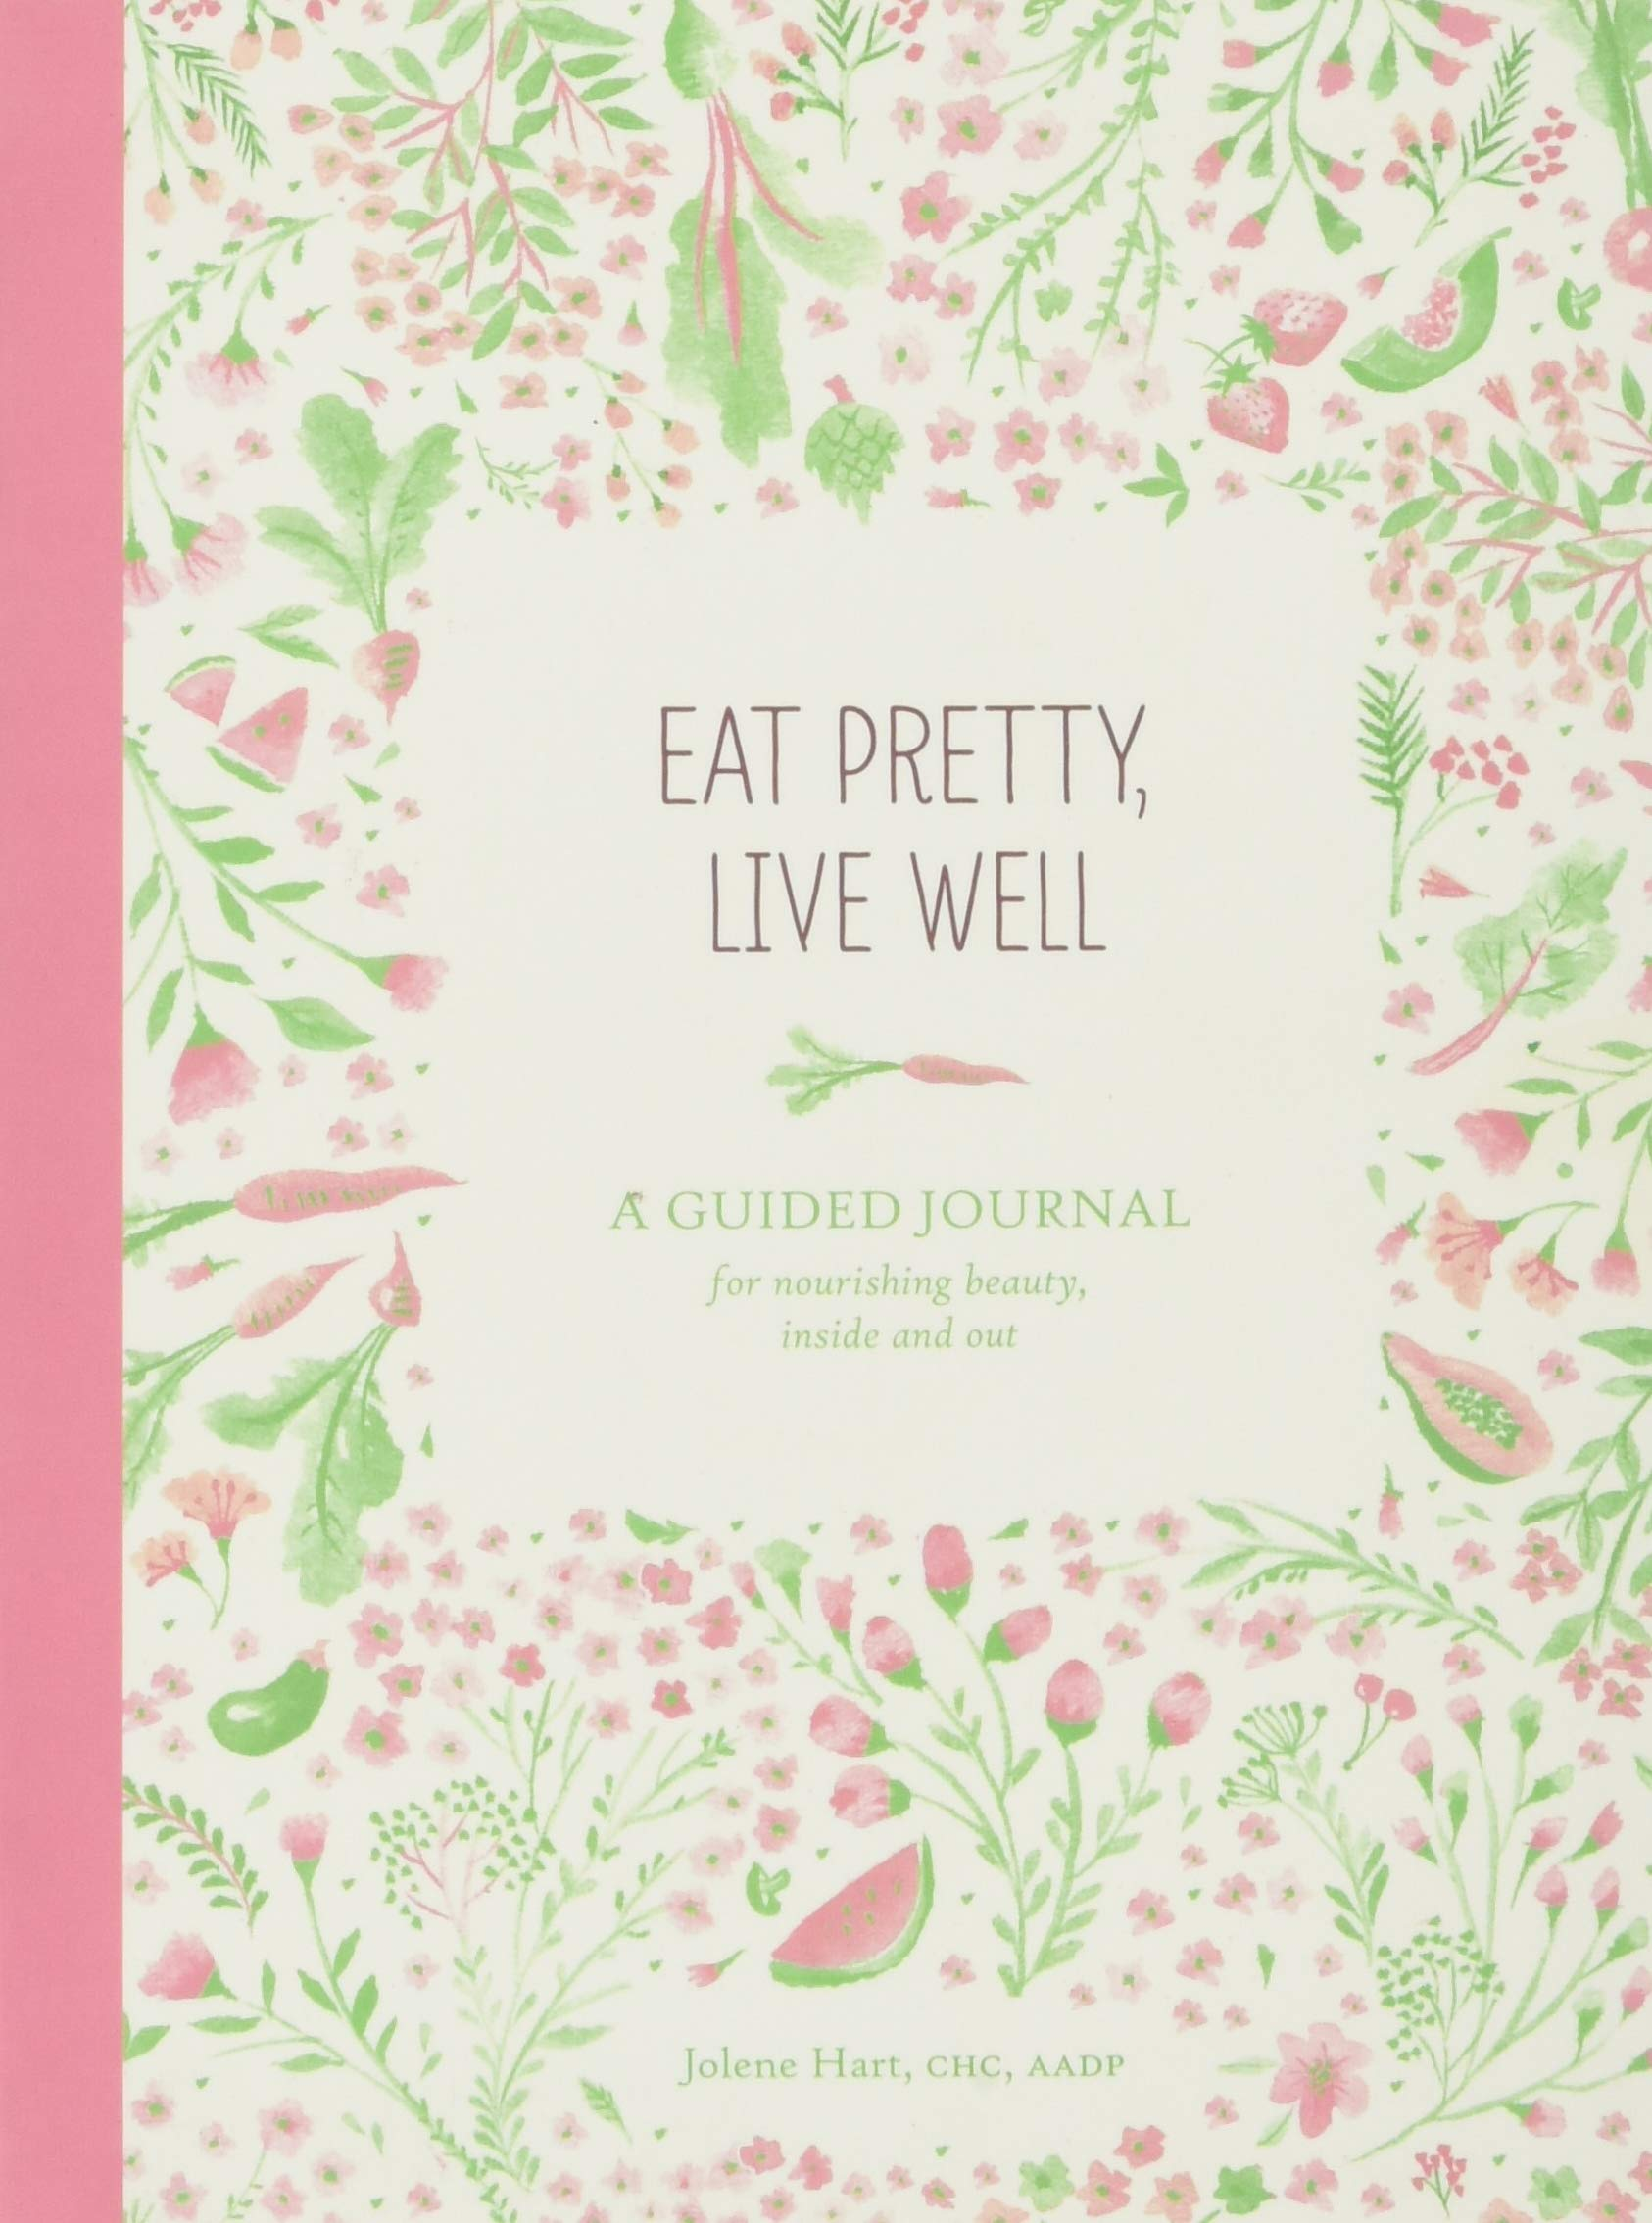 Eat Pretty Live Well: A Guided Journal for Nourishing Beauty, Inside and Out (Food Journal, Health and Diet Journal, Nutritional Books) 1